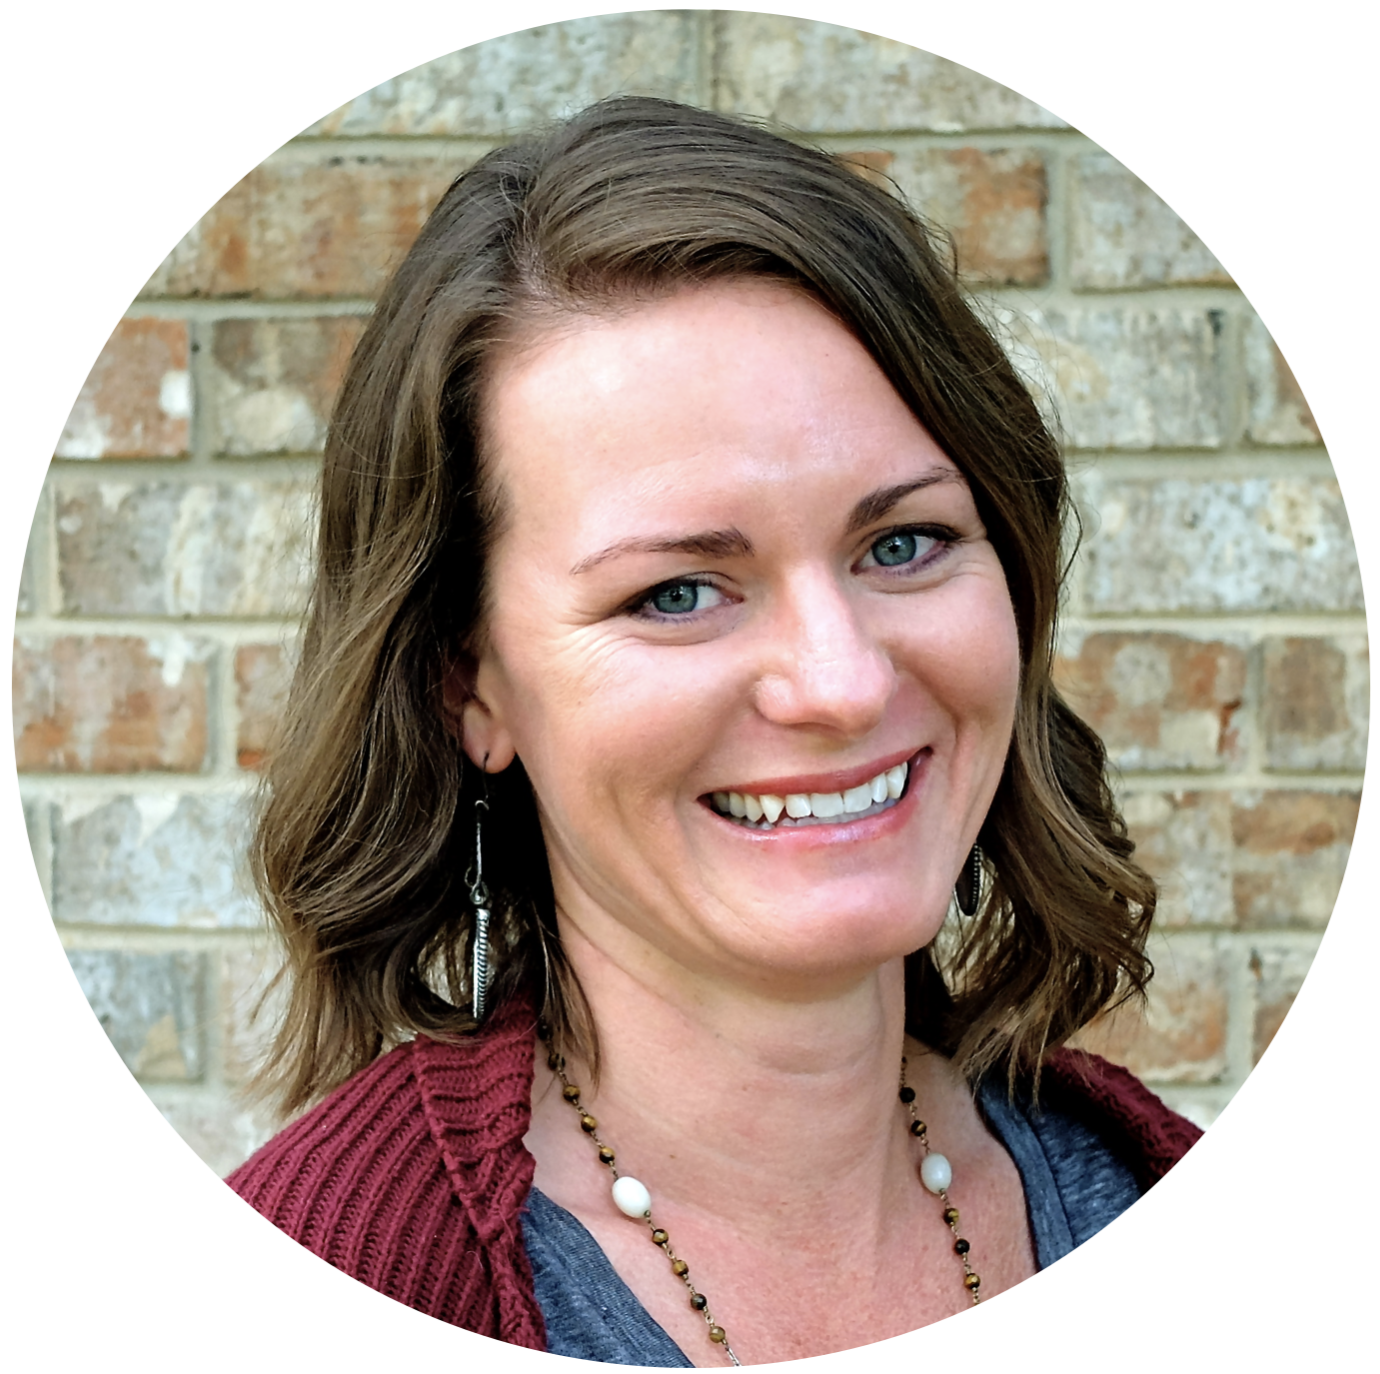 Lee Anne Bingham - Currently accepting Texas based and International clients. Enneagram coaching available for all locations.